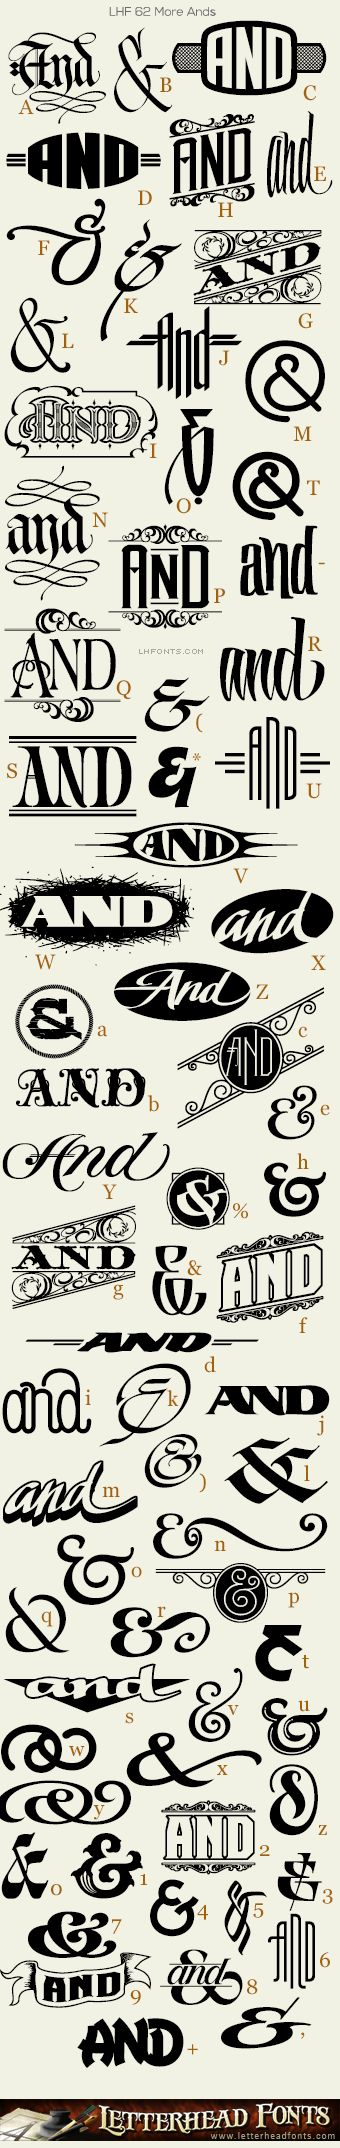 Letterhead Fonts / LHF 62 More Ands font / Decorative Ampersands